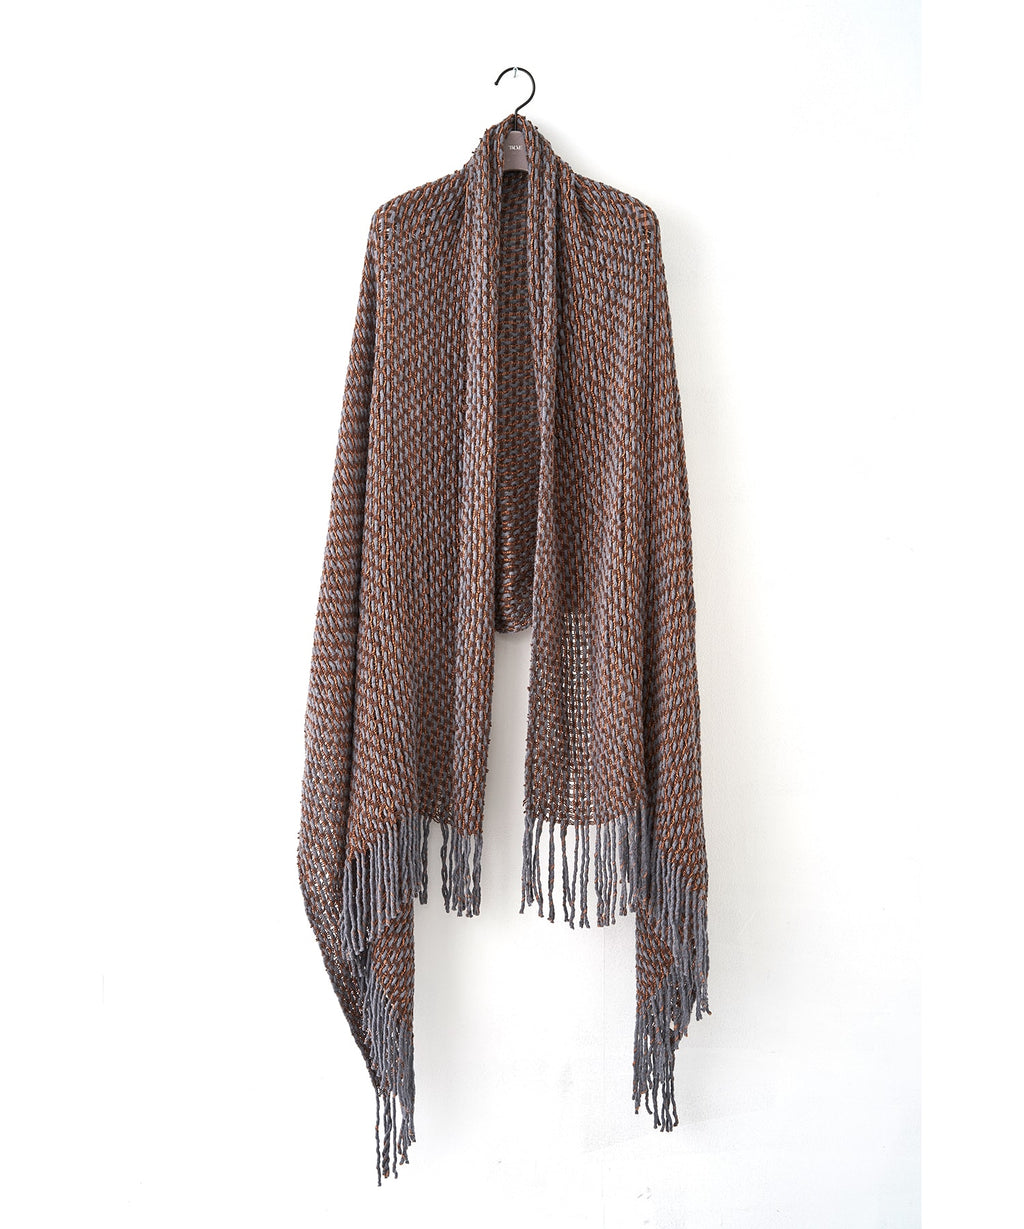 TROVE / MIX BLANKET / GRAY BEIGE